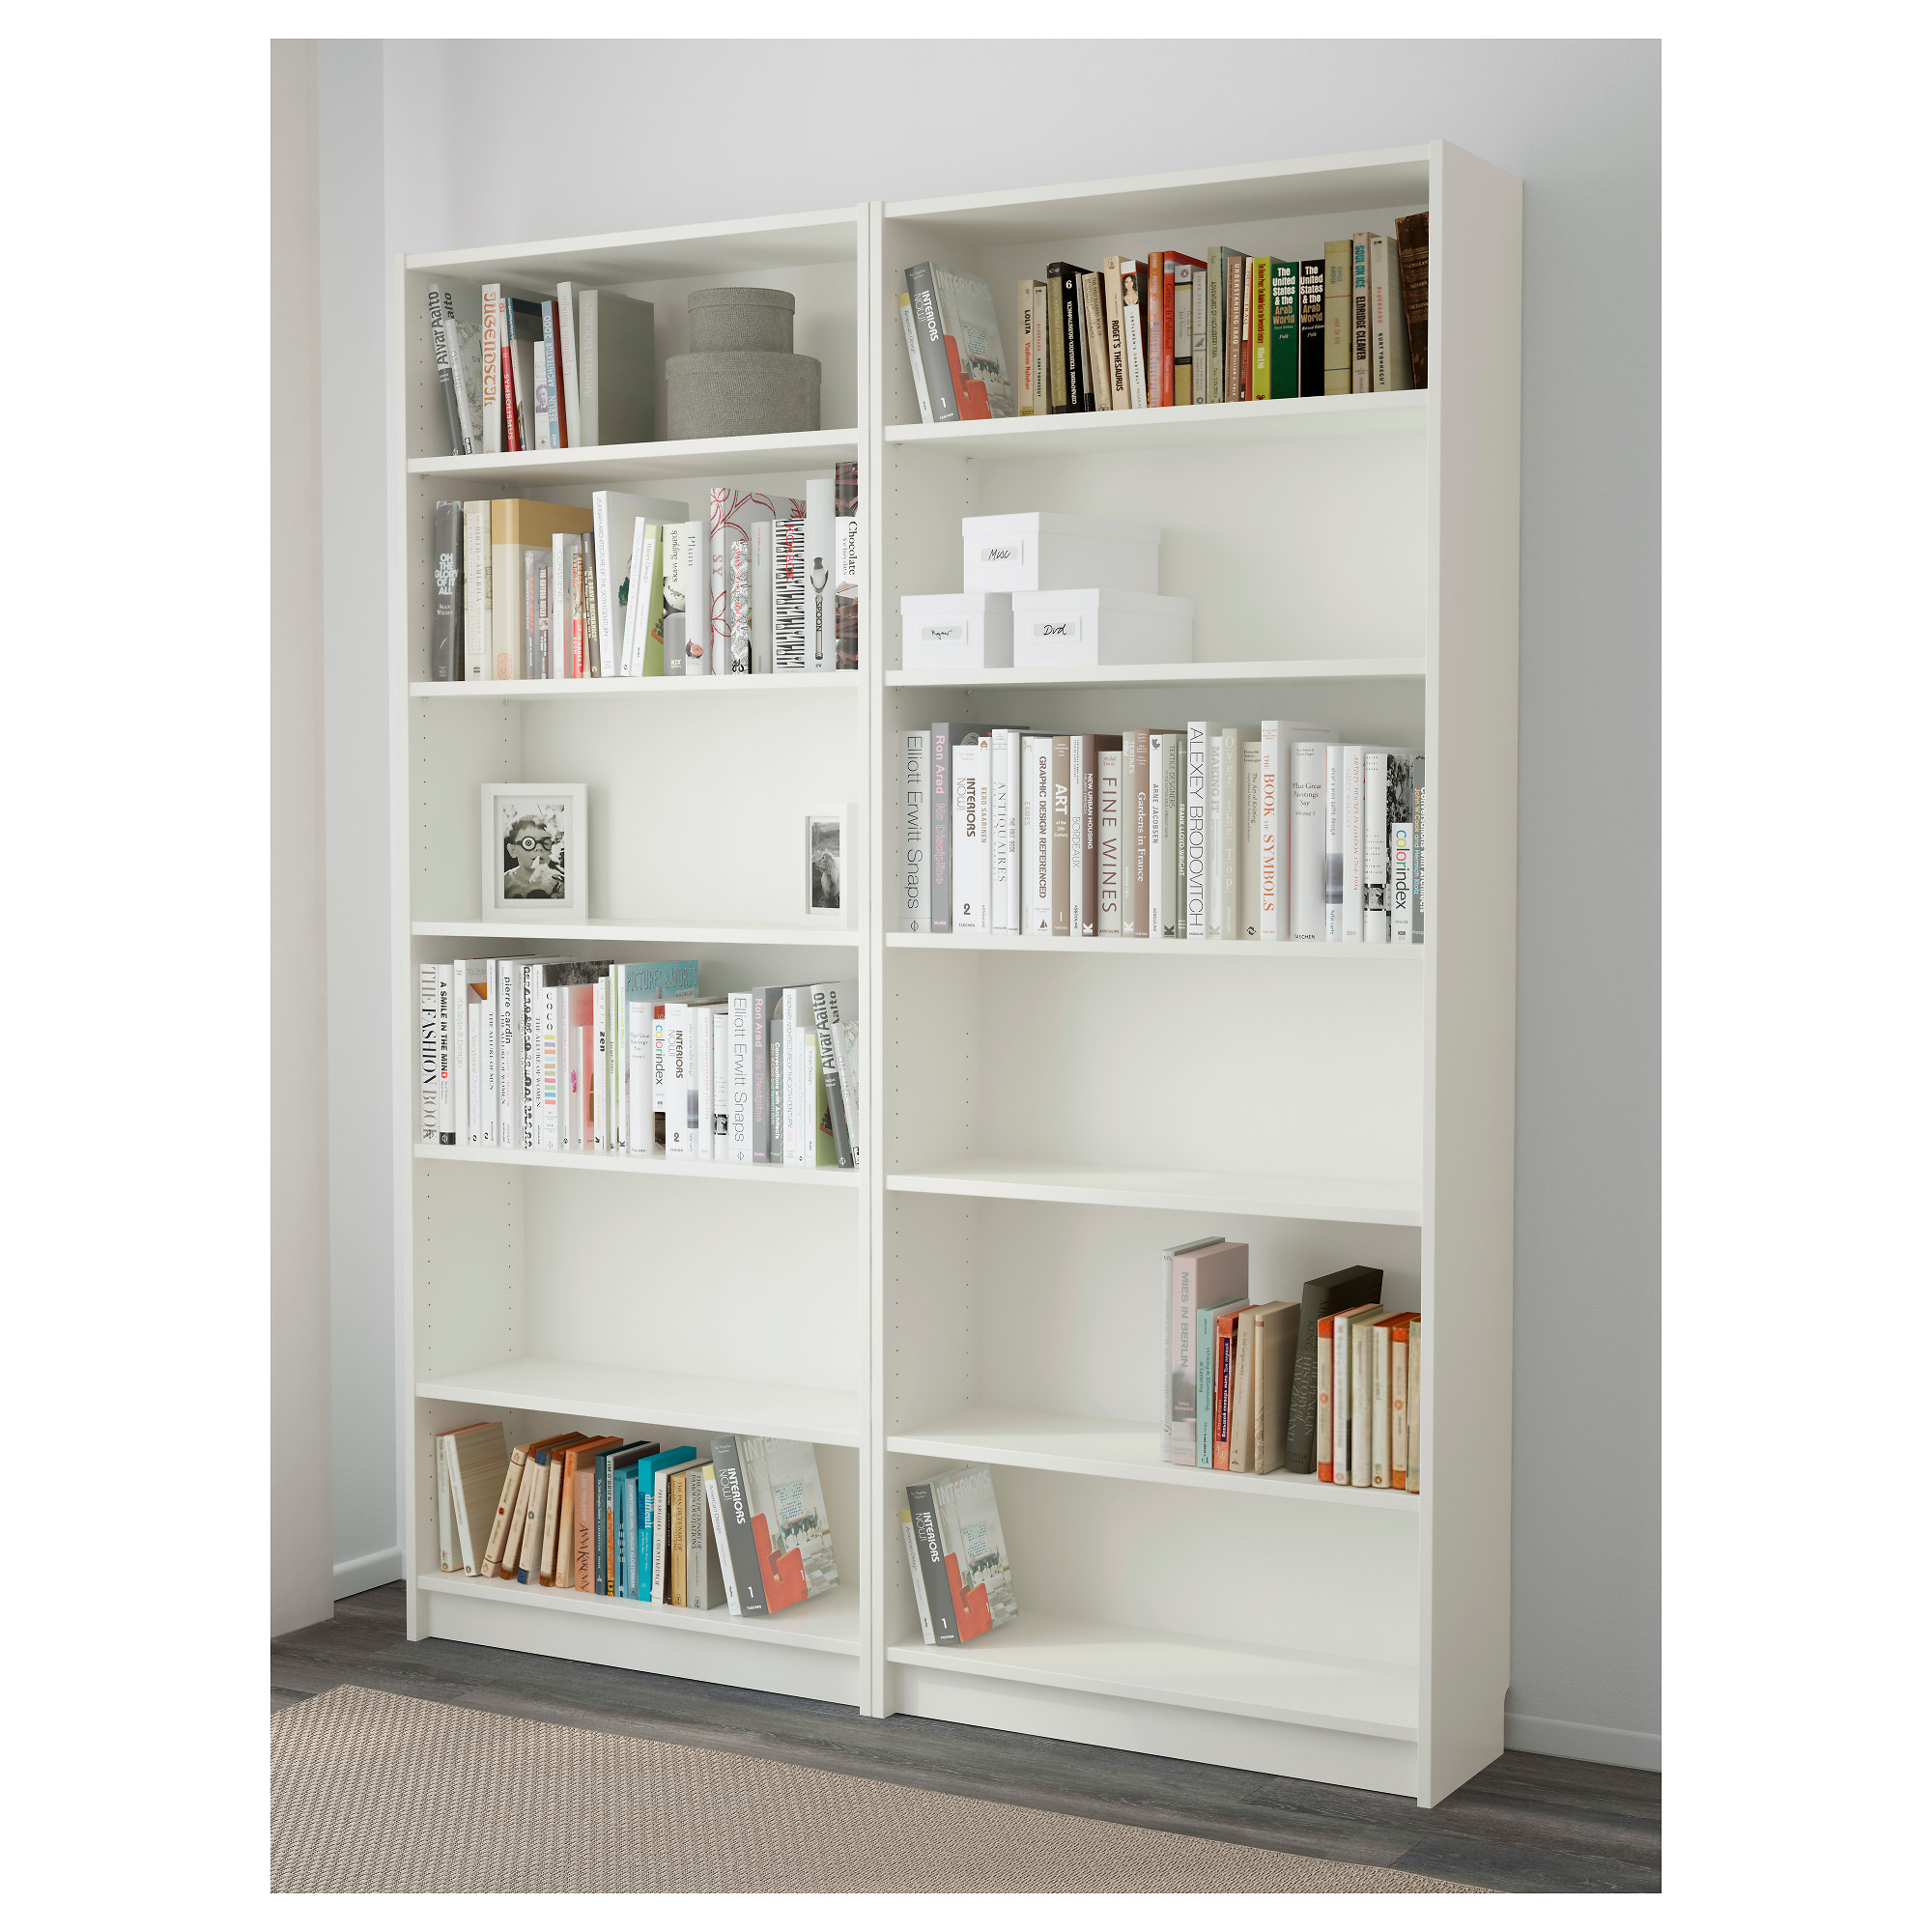 bookcases ikea billy bookcase adjustable shelves; adapt space between shelves  according to your RJEPTQA